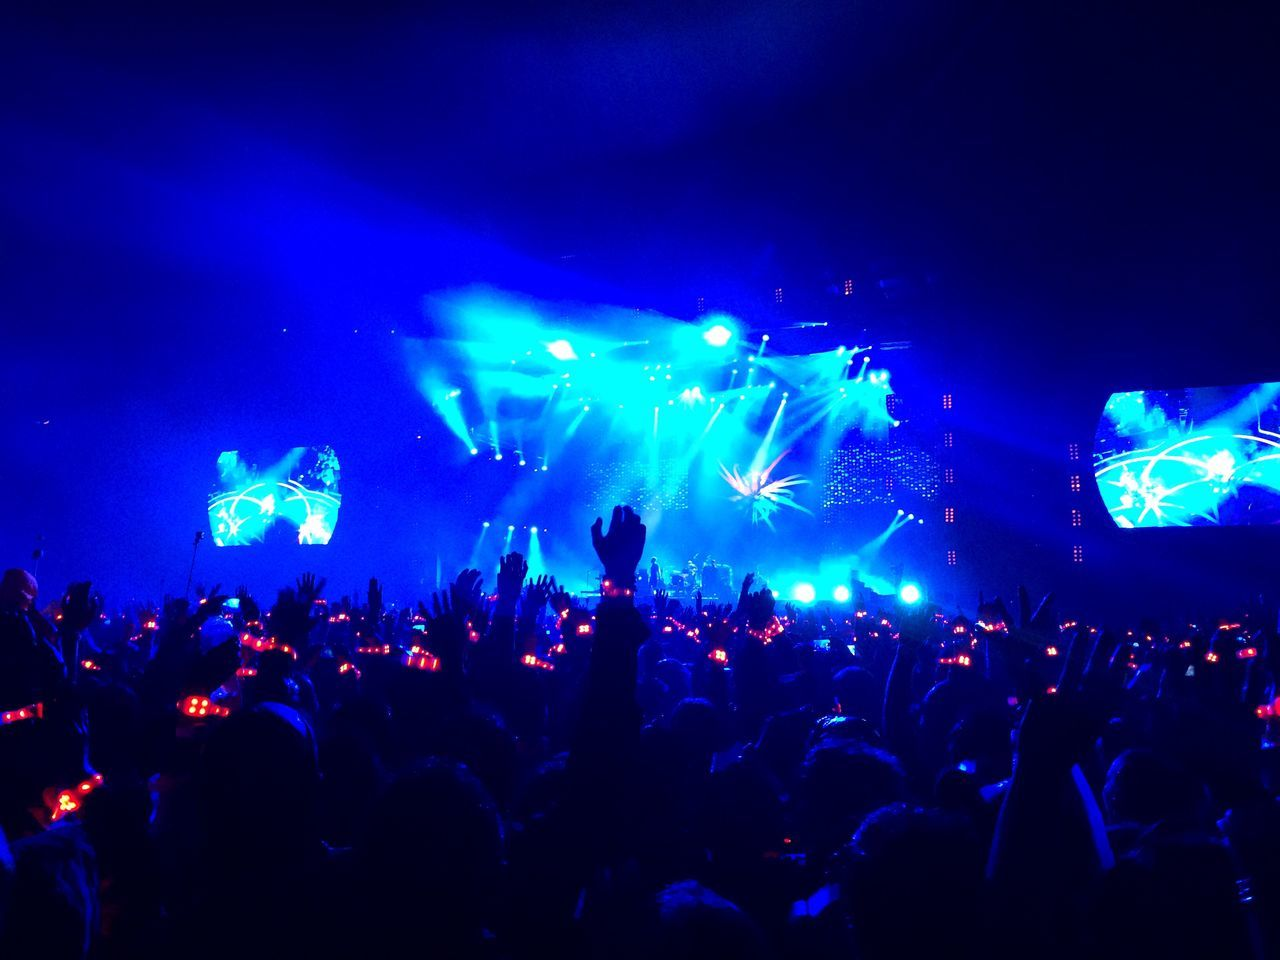 Large Group Of People Arts Culture And Entertainment Night Music Festival Crowd Blue Event Music Real People Audience Popular Music Concert Nightlife Enjoyment Stage Light Illuminated Fun Performance Men Leisure Activity Stage - Performance Space Coldplay Coldplay Concert  ColdplayArgentina2016